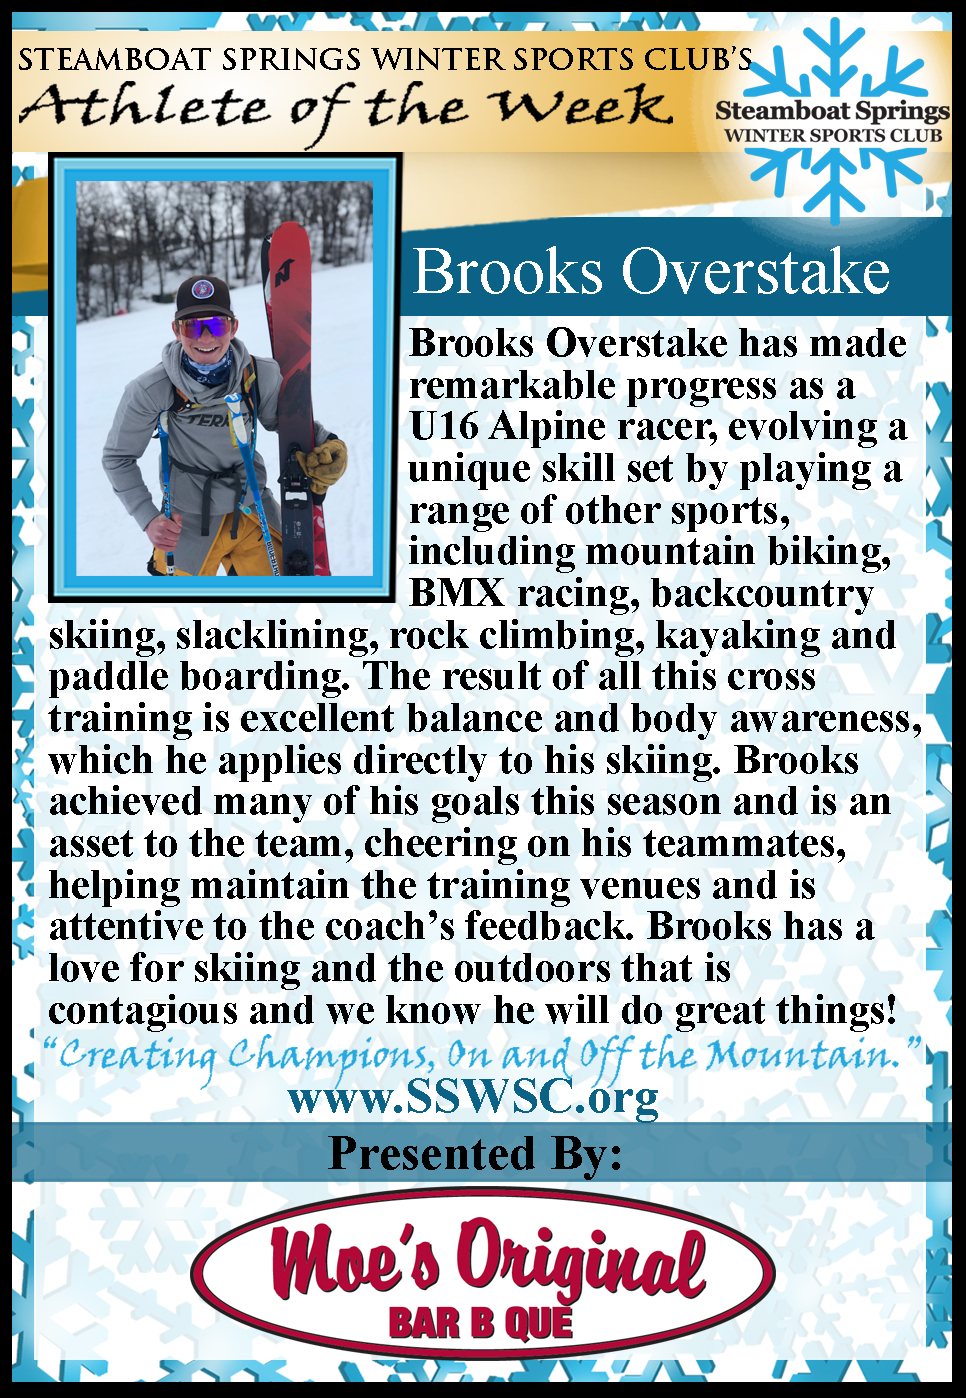 Athlete of the Week, Brooks Overstake